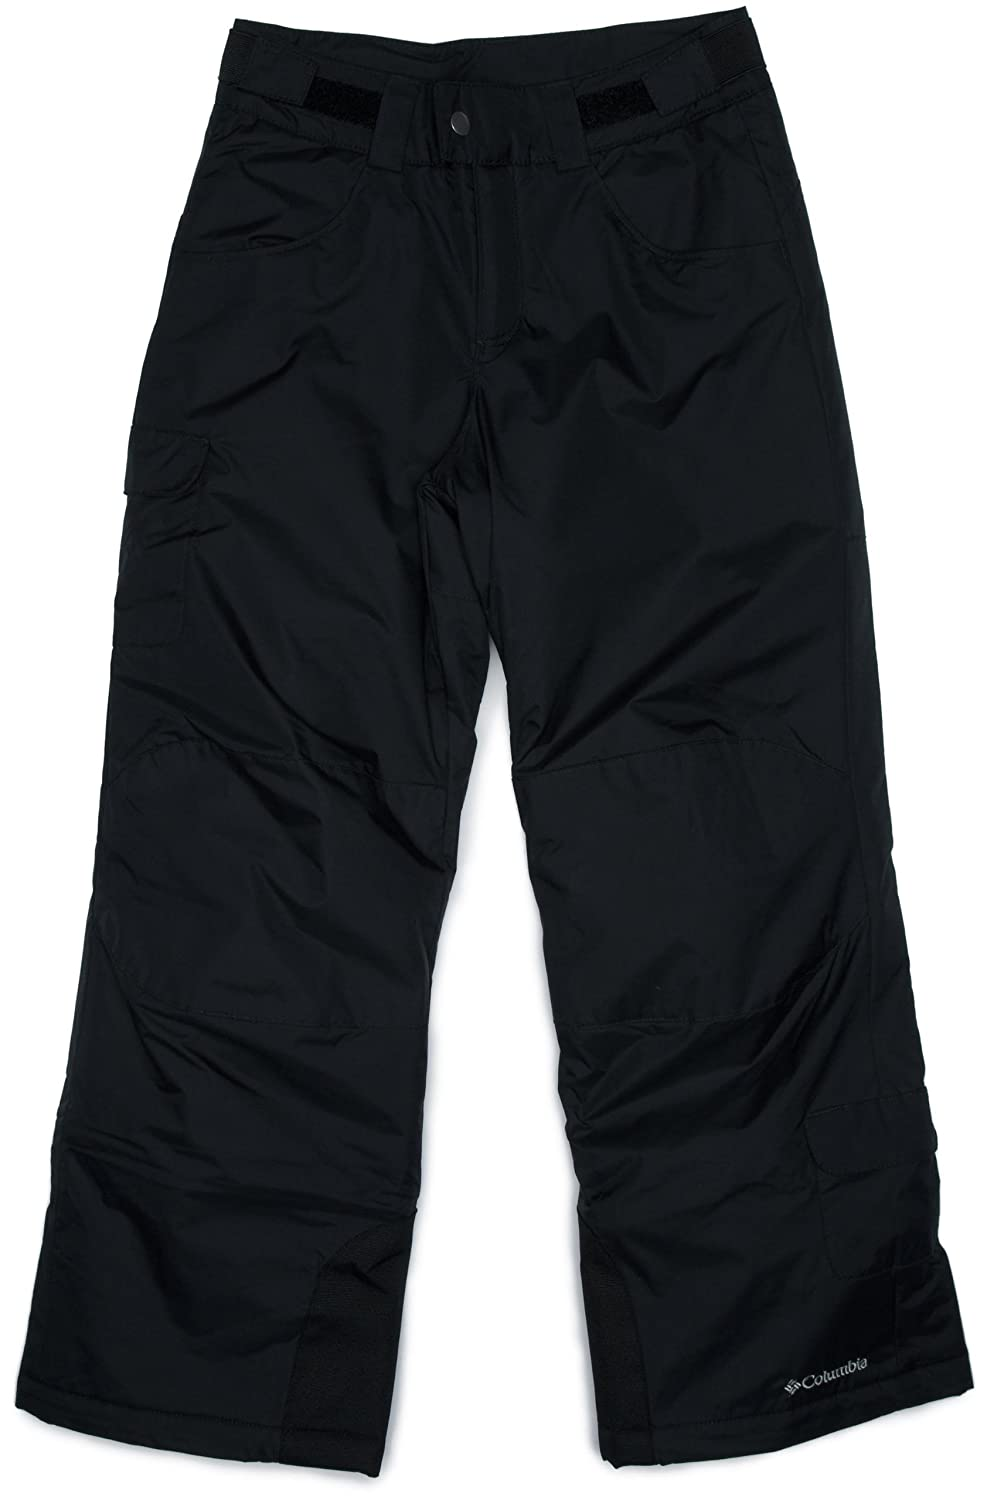 Columbia Vintage Vista Youth Pant Size 7/8 SG8003